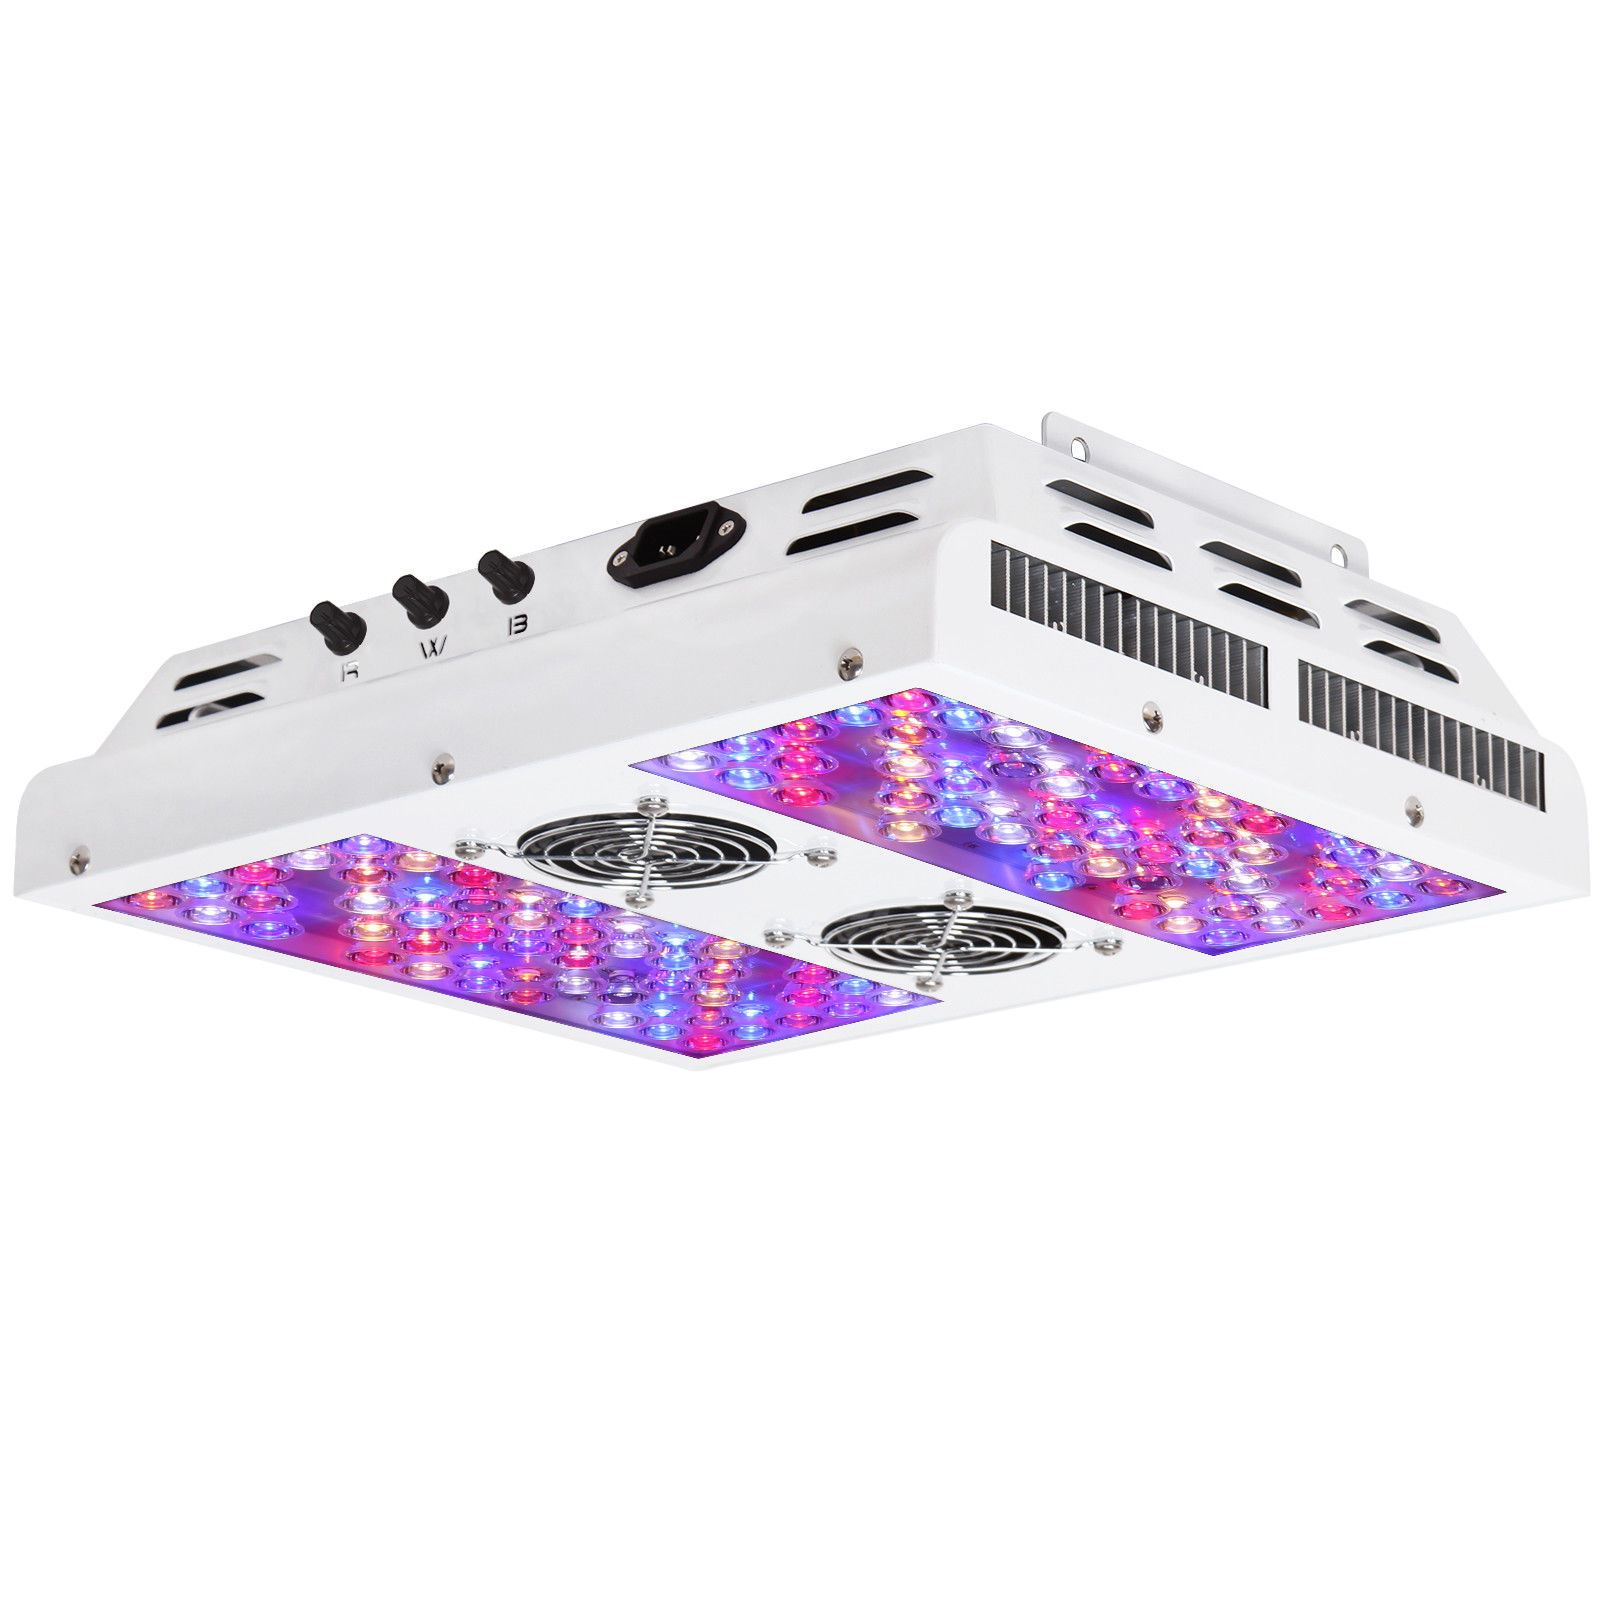 https://thehippiehouse.com.au/collections/led-grow-lights